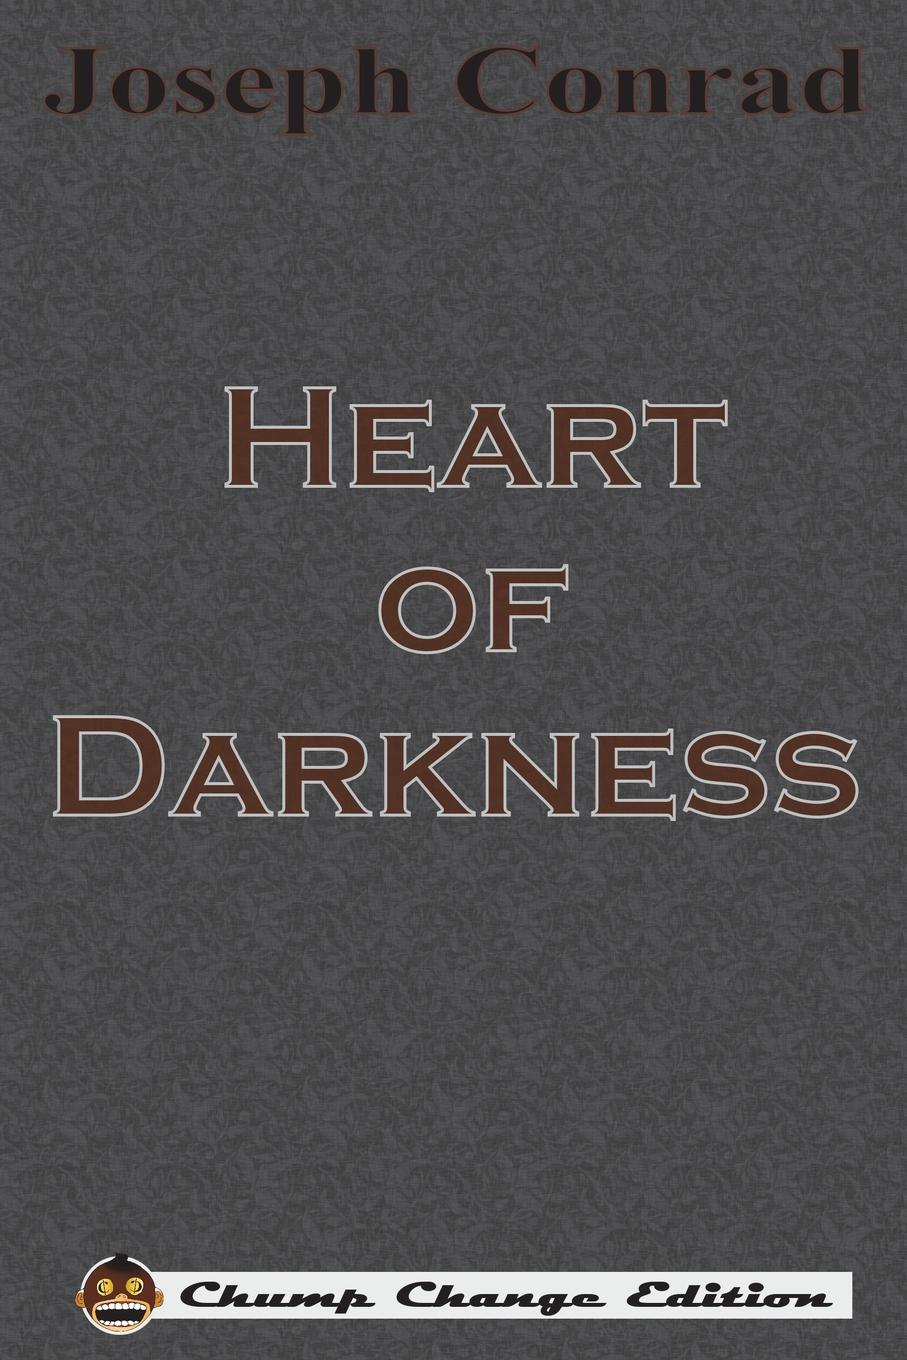 Joseph Conrad Heart of Darkness (Chump Change Edition) kate proctor prince of darkness